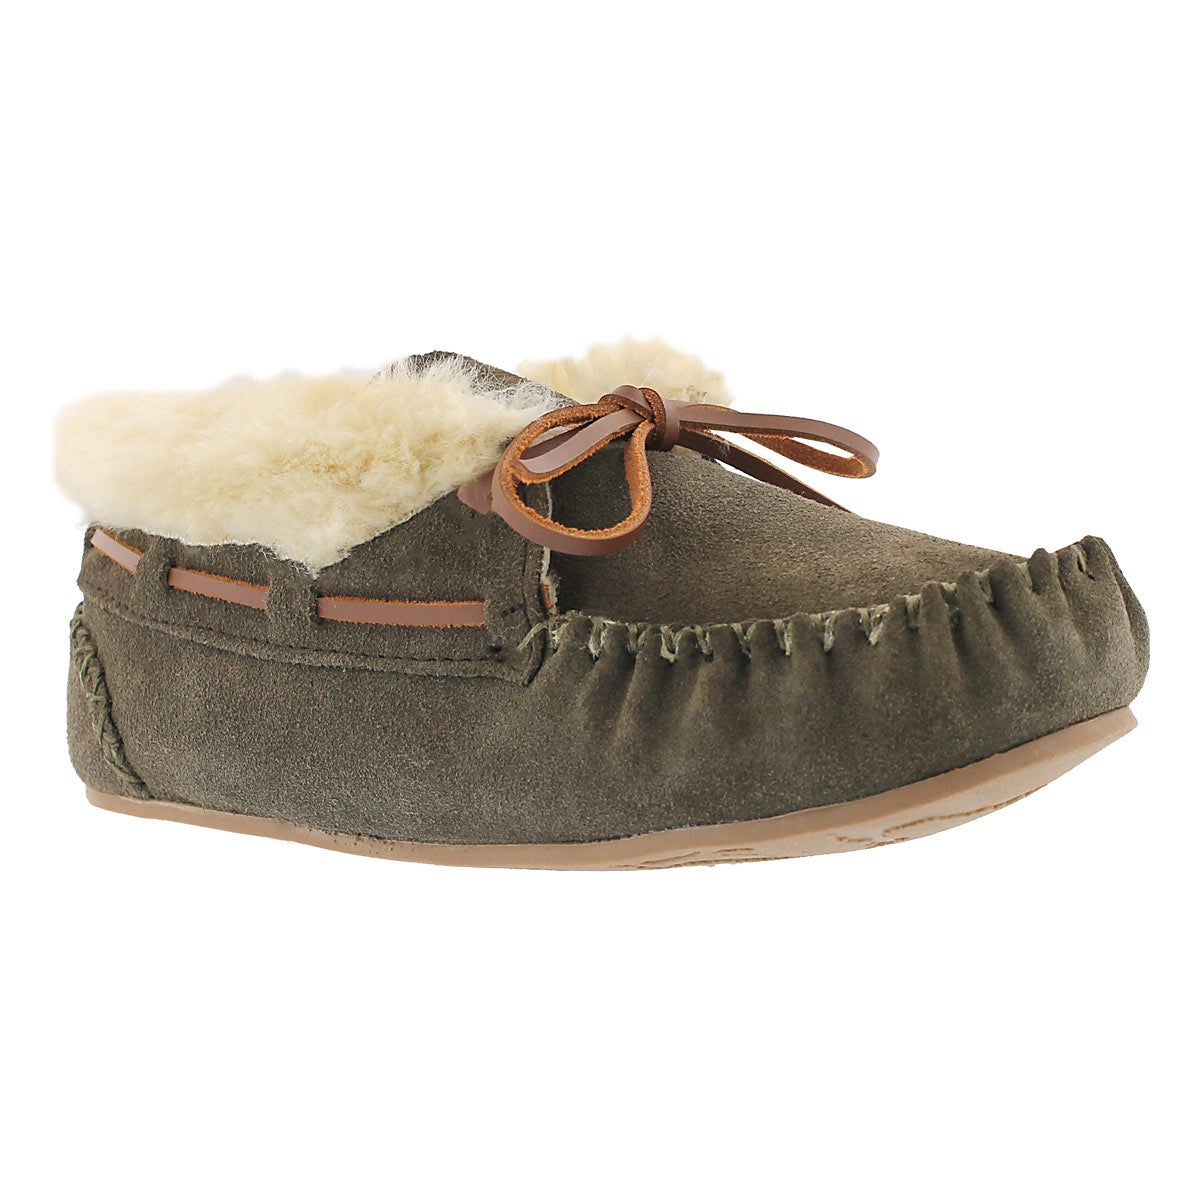 Women's BALI HI PLAIN birch moc booties